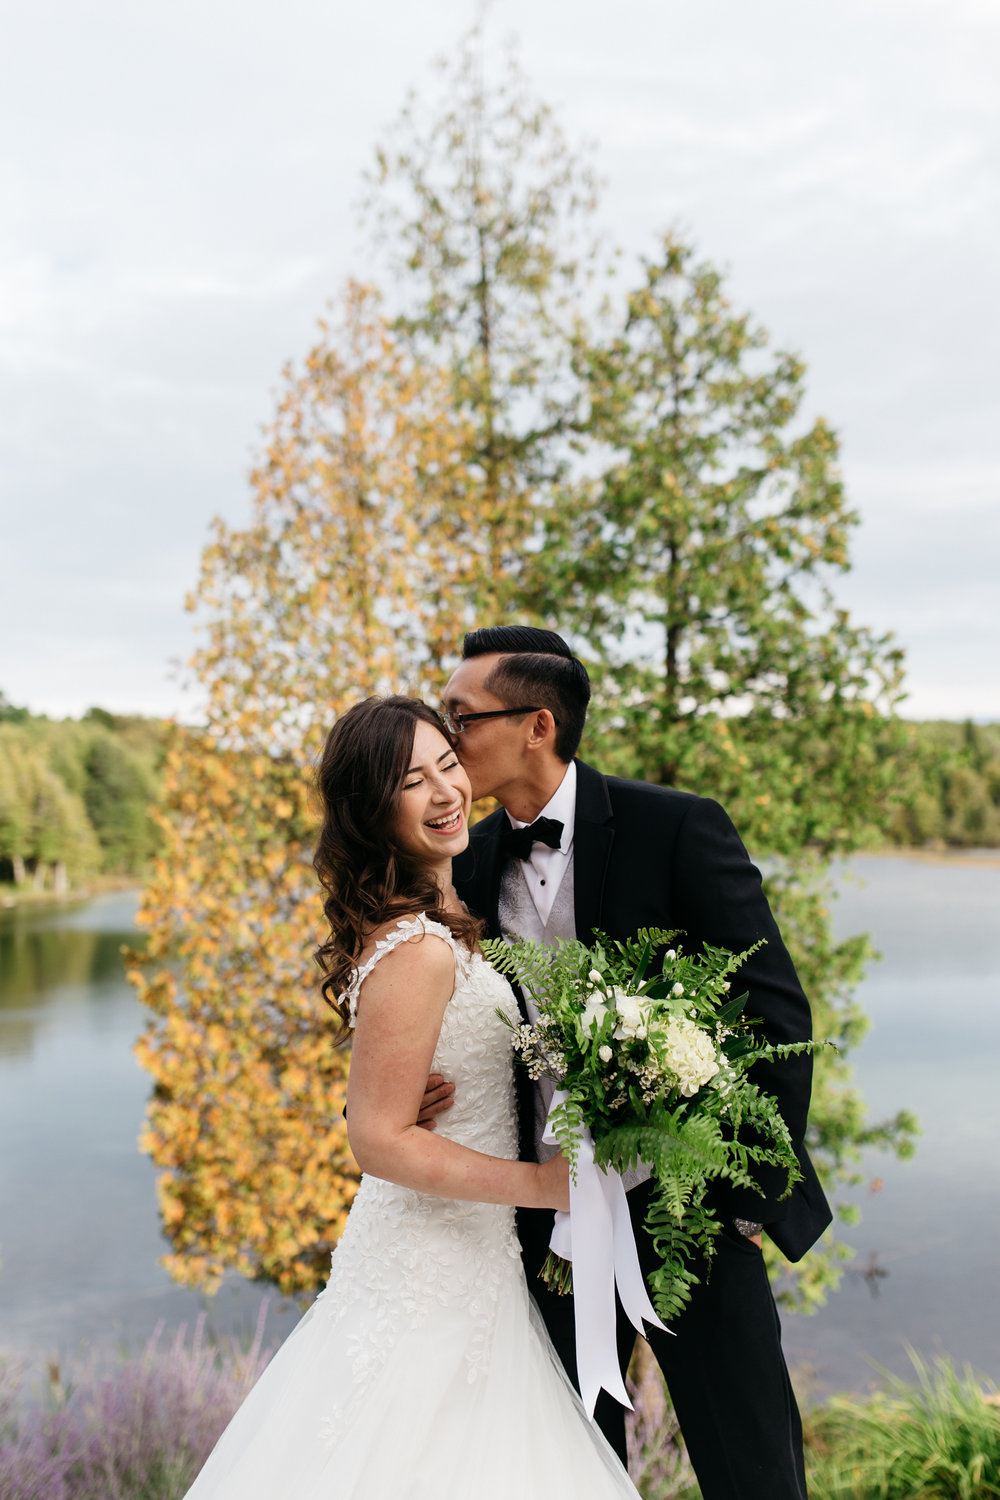 Best Wedding Portraits Canada